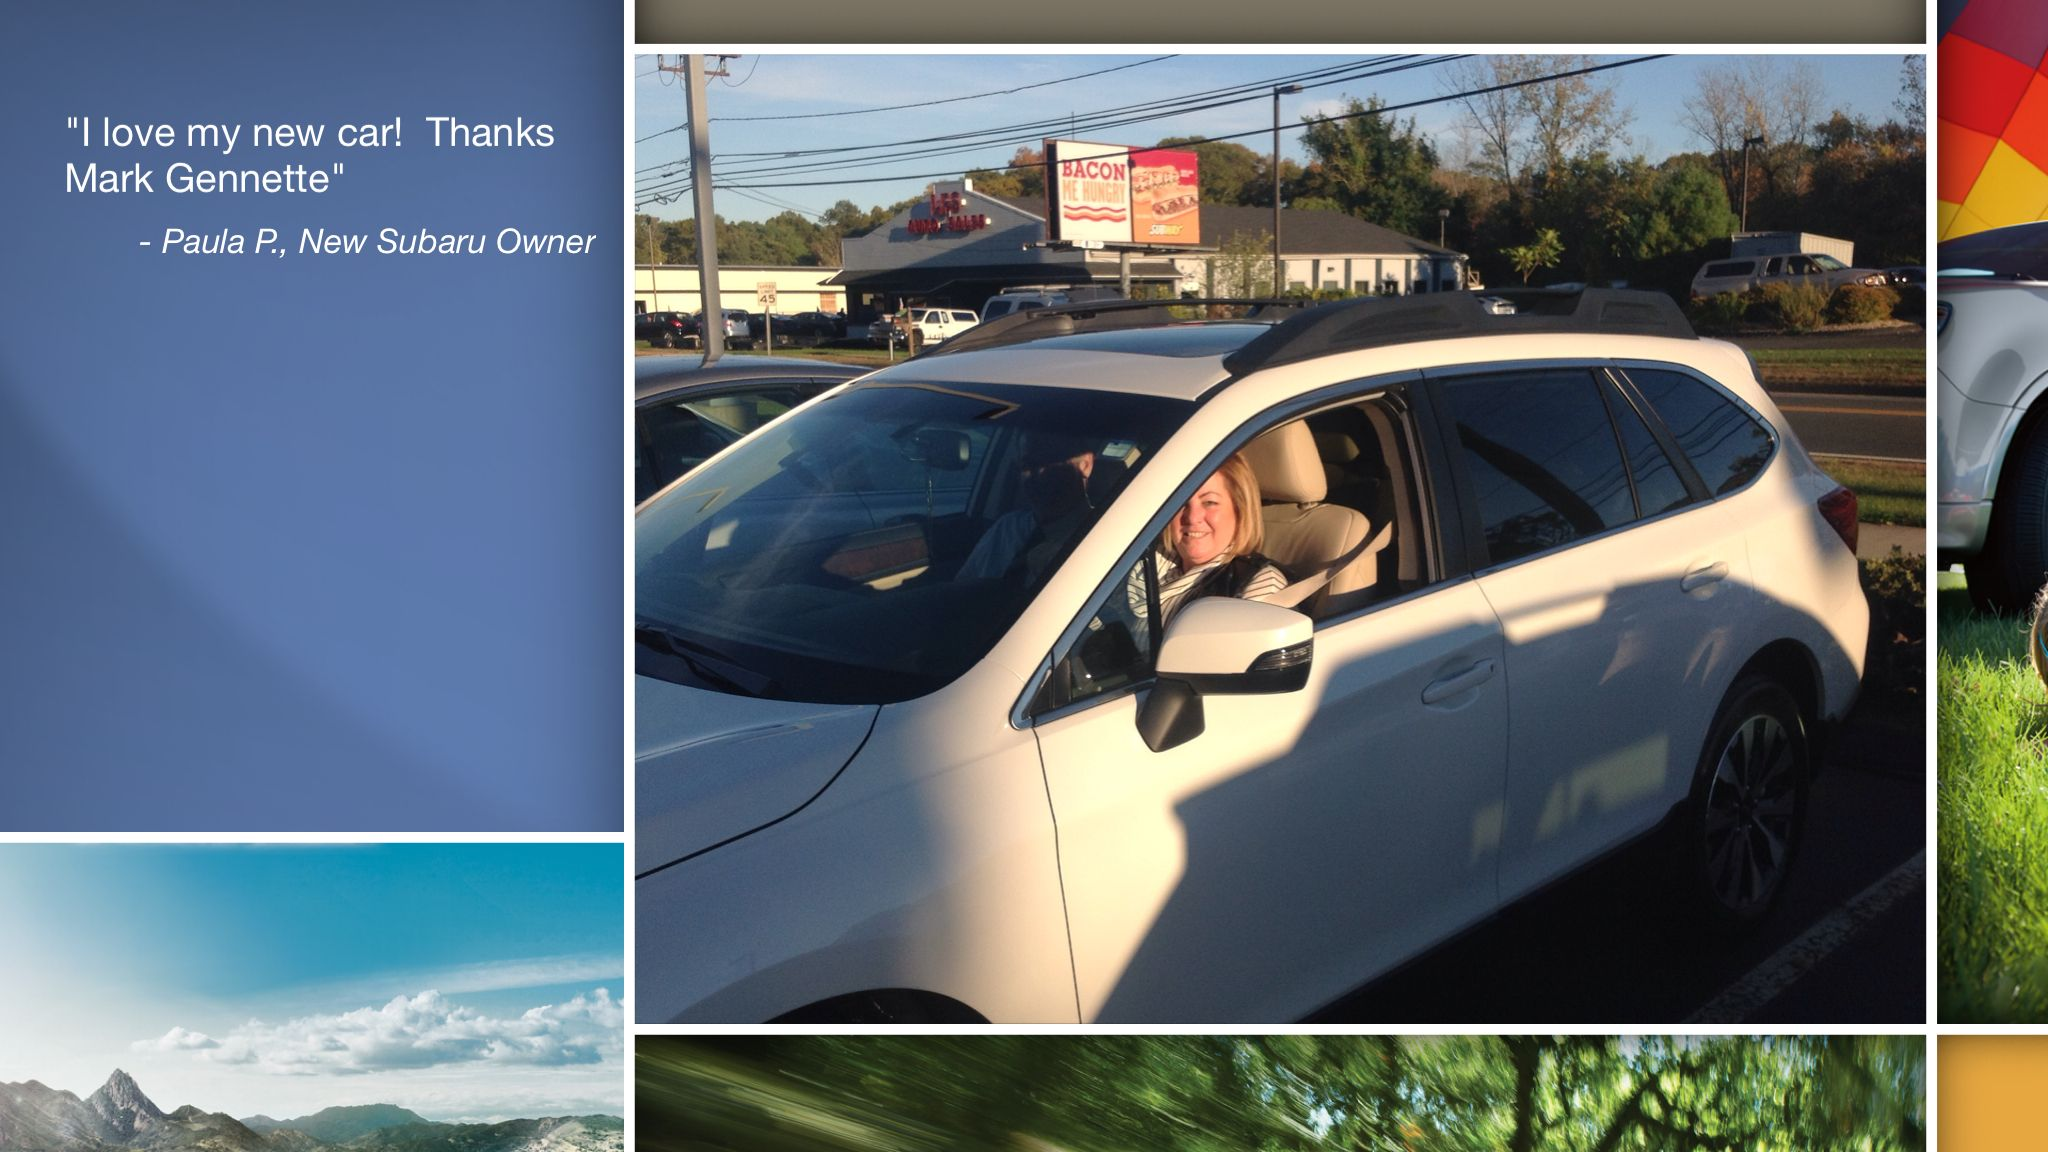 Dear Paula Pestalozzi   A heartfelt thank you for the purchase of your new Subaru from all of us at Premier Subaru.   We're proud to have you as part of the Subaru Family.